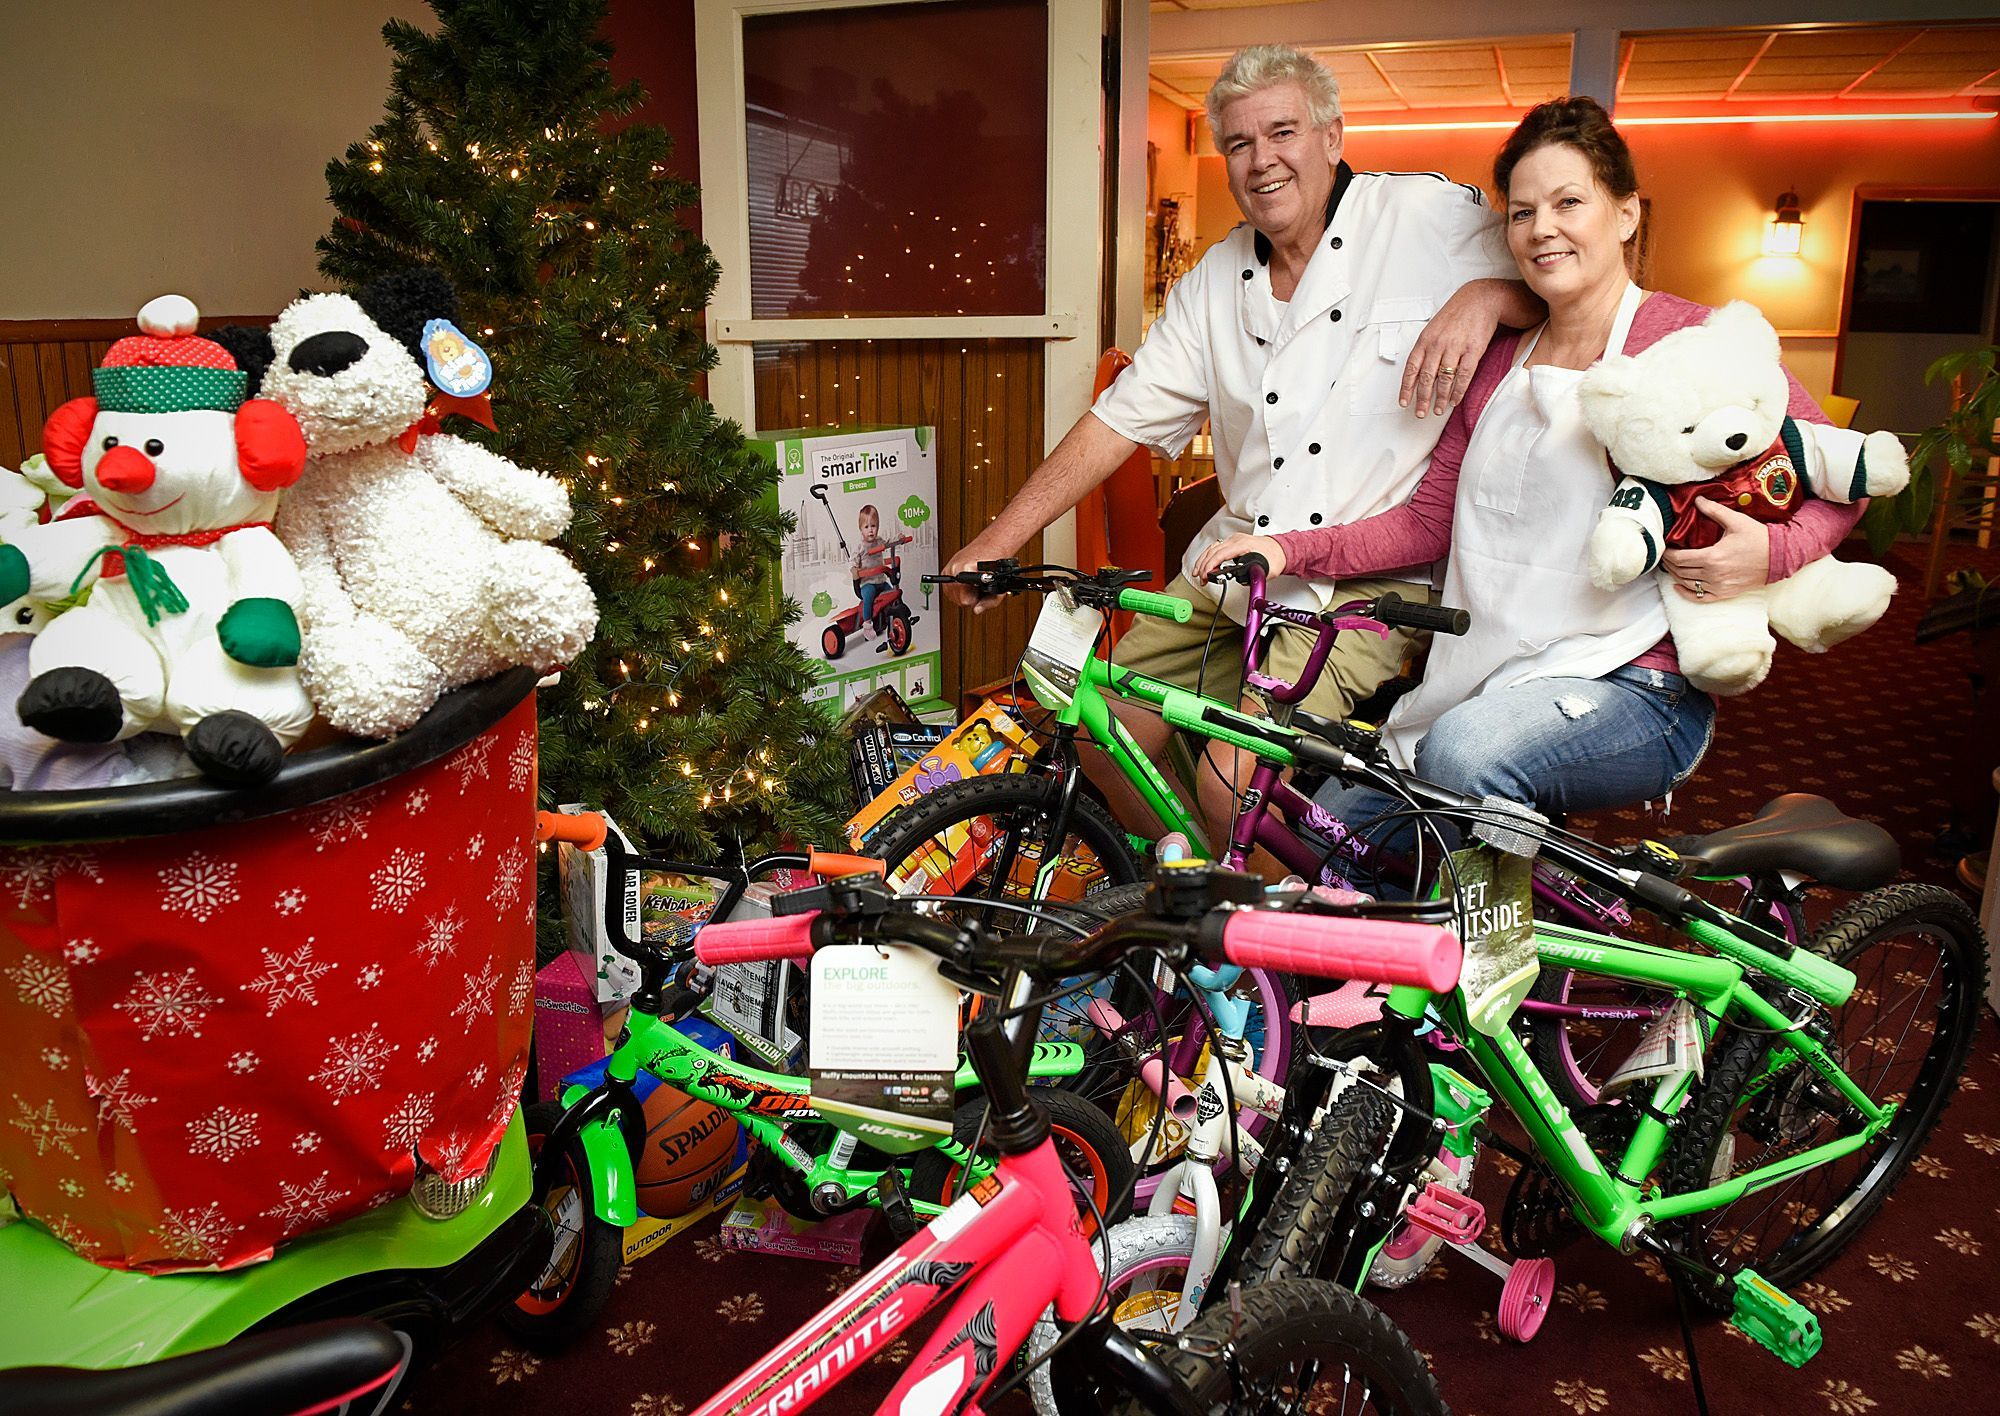 Charlie and Candace Peterka of Charlie's Pizza get ready Monday, Dec. 21, 2015 for their annual free Christmas Day meal at their restaurant in Little Falls. The Peterkas are also collecting toy and bikes to give away to children.